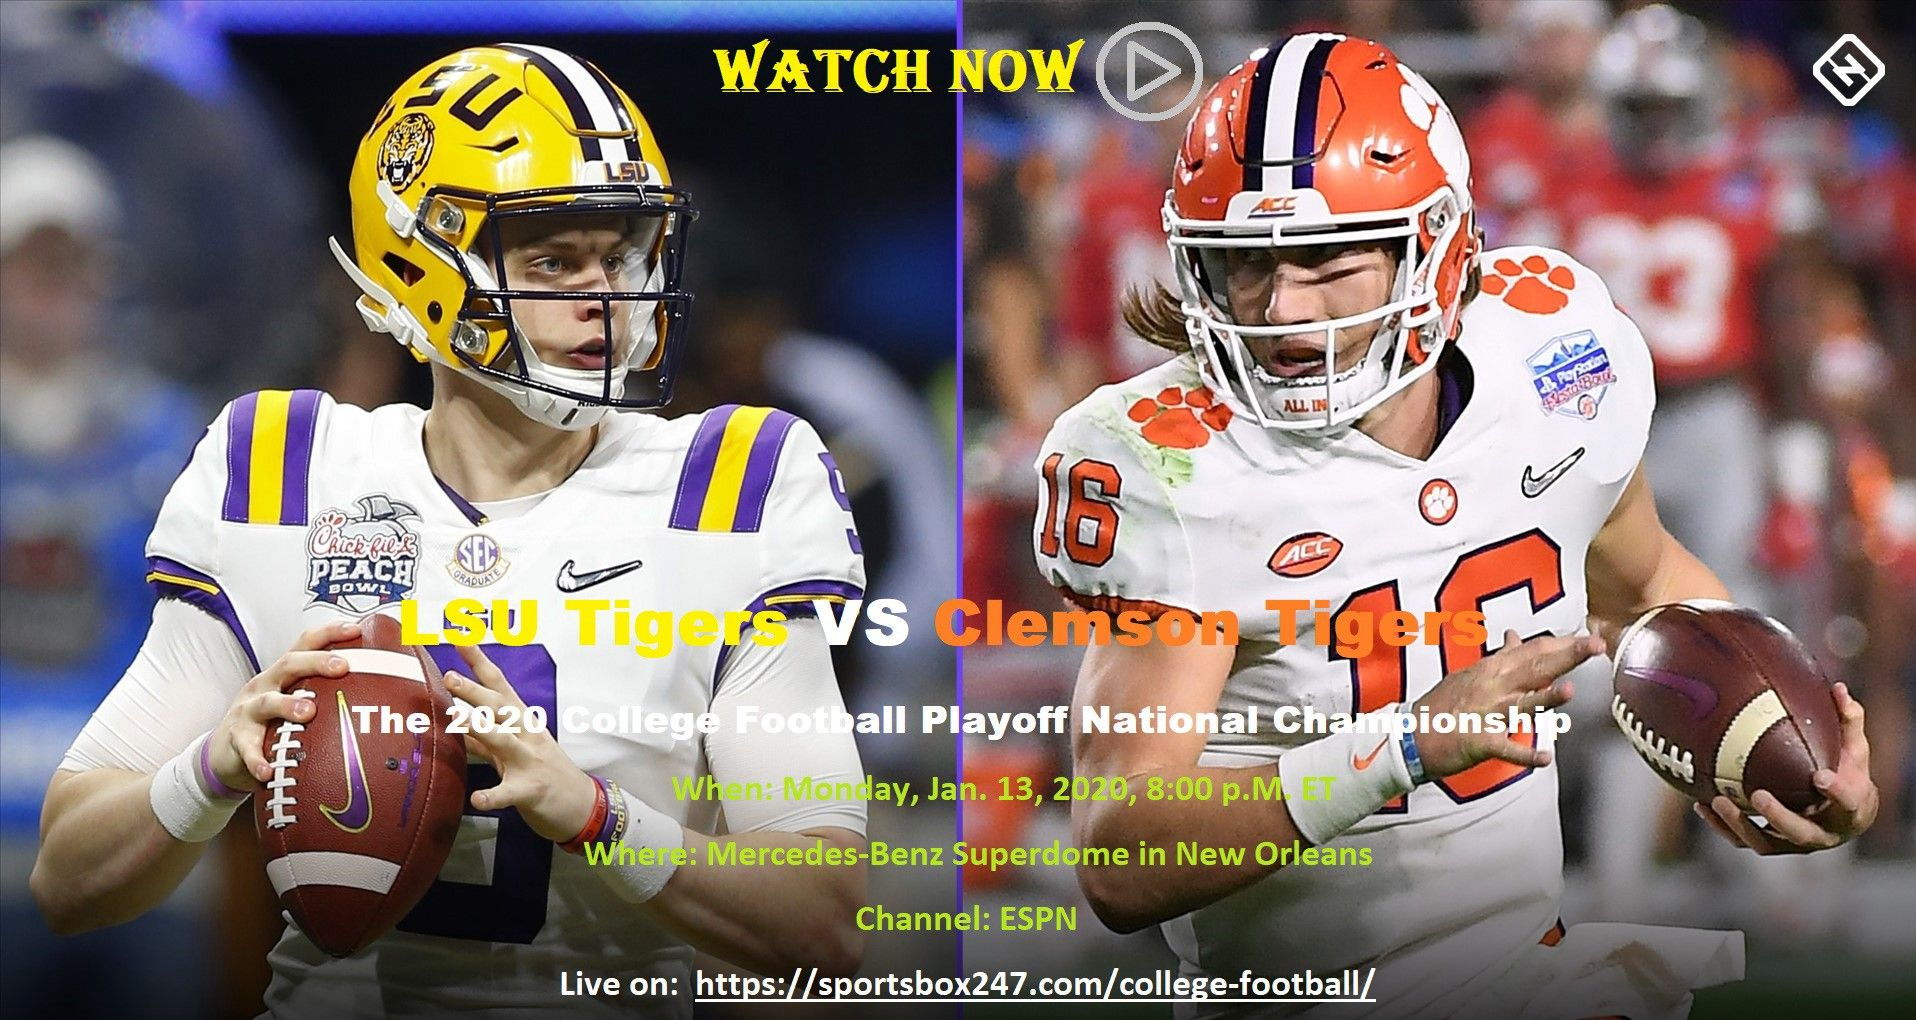 Lsu tigers vs clemson tigers will meet in an thrilling